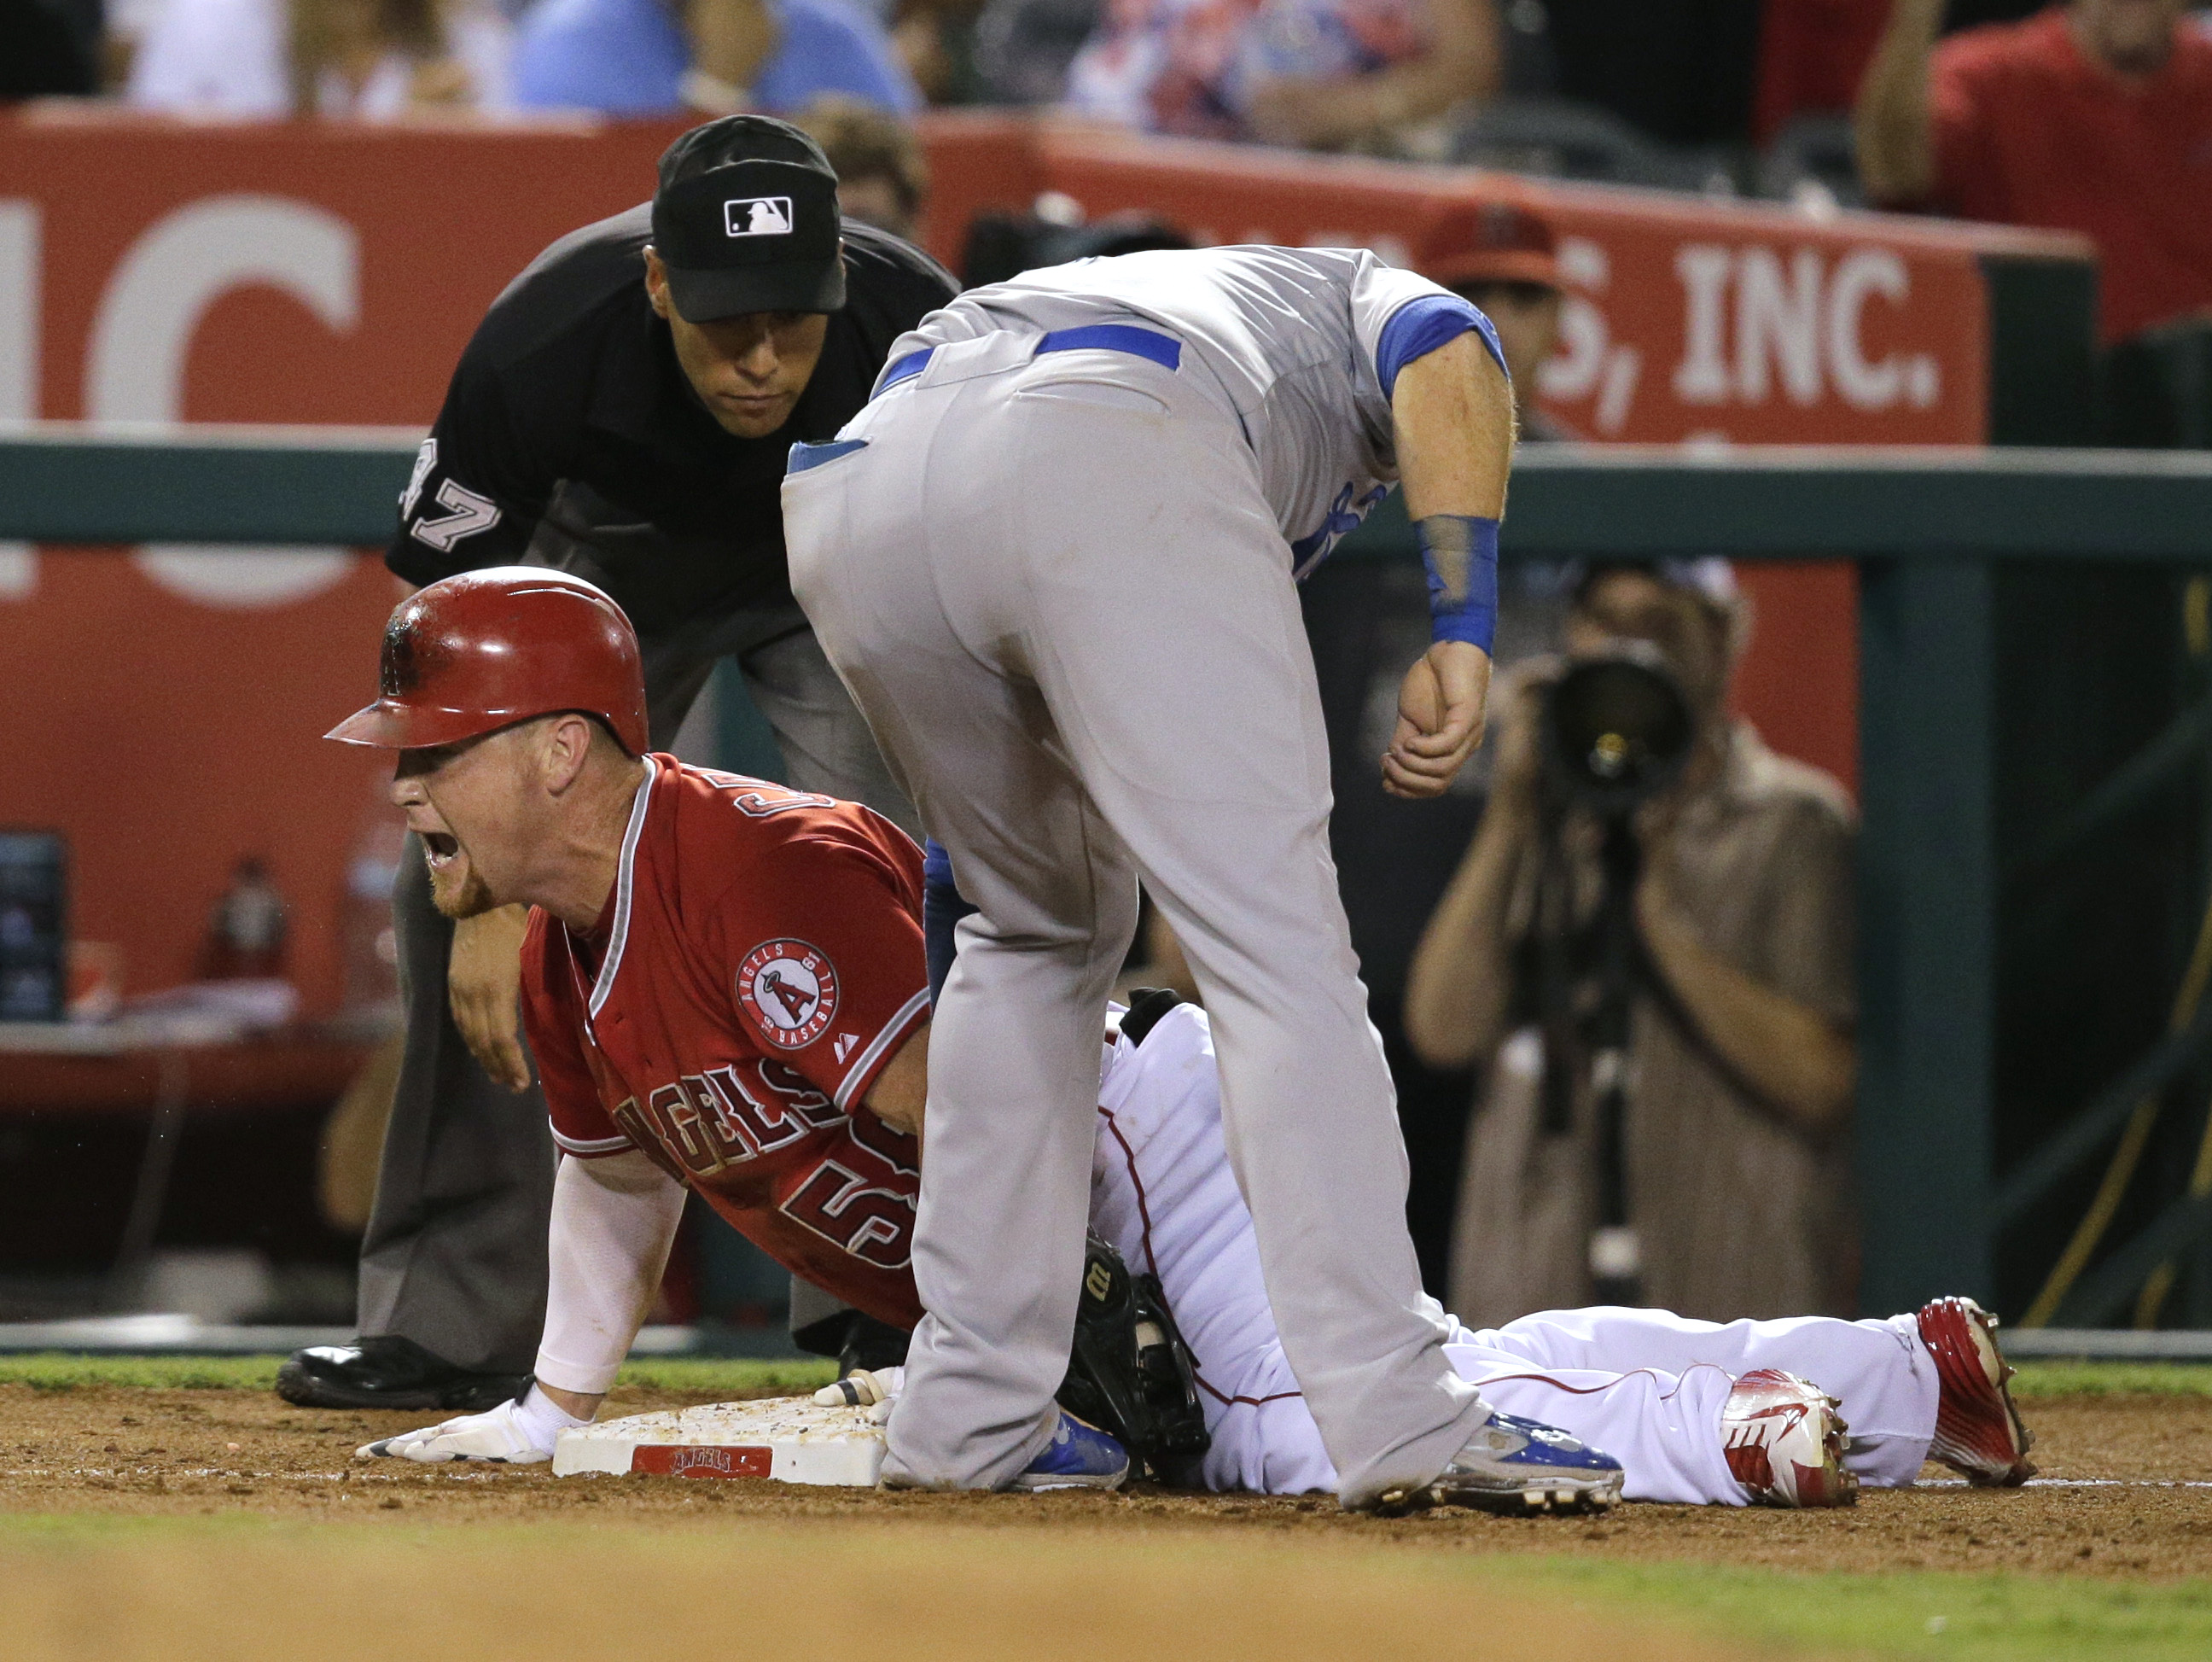 Los Angeles Angels' Kole Calhoun, left, celebrates his triple as Los Angeles Dodgers third baseman Justin Turner applies a late tag during the eighth inning of a baseball game, Wednesday, Sept. 9, 2015, in Anaheim, Calif. (AP Photo/Jae C. Hong)